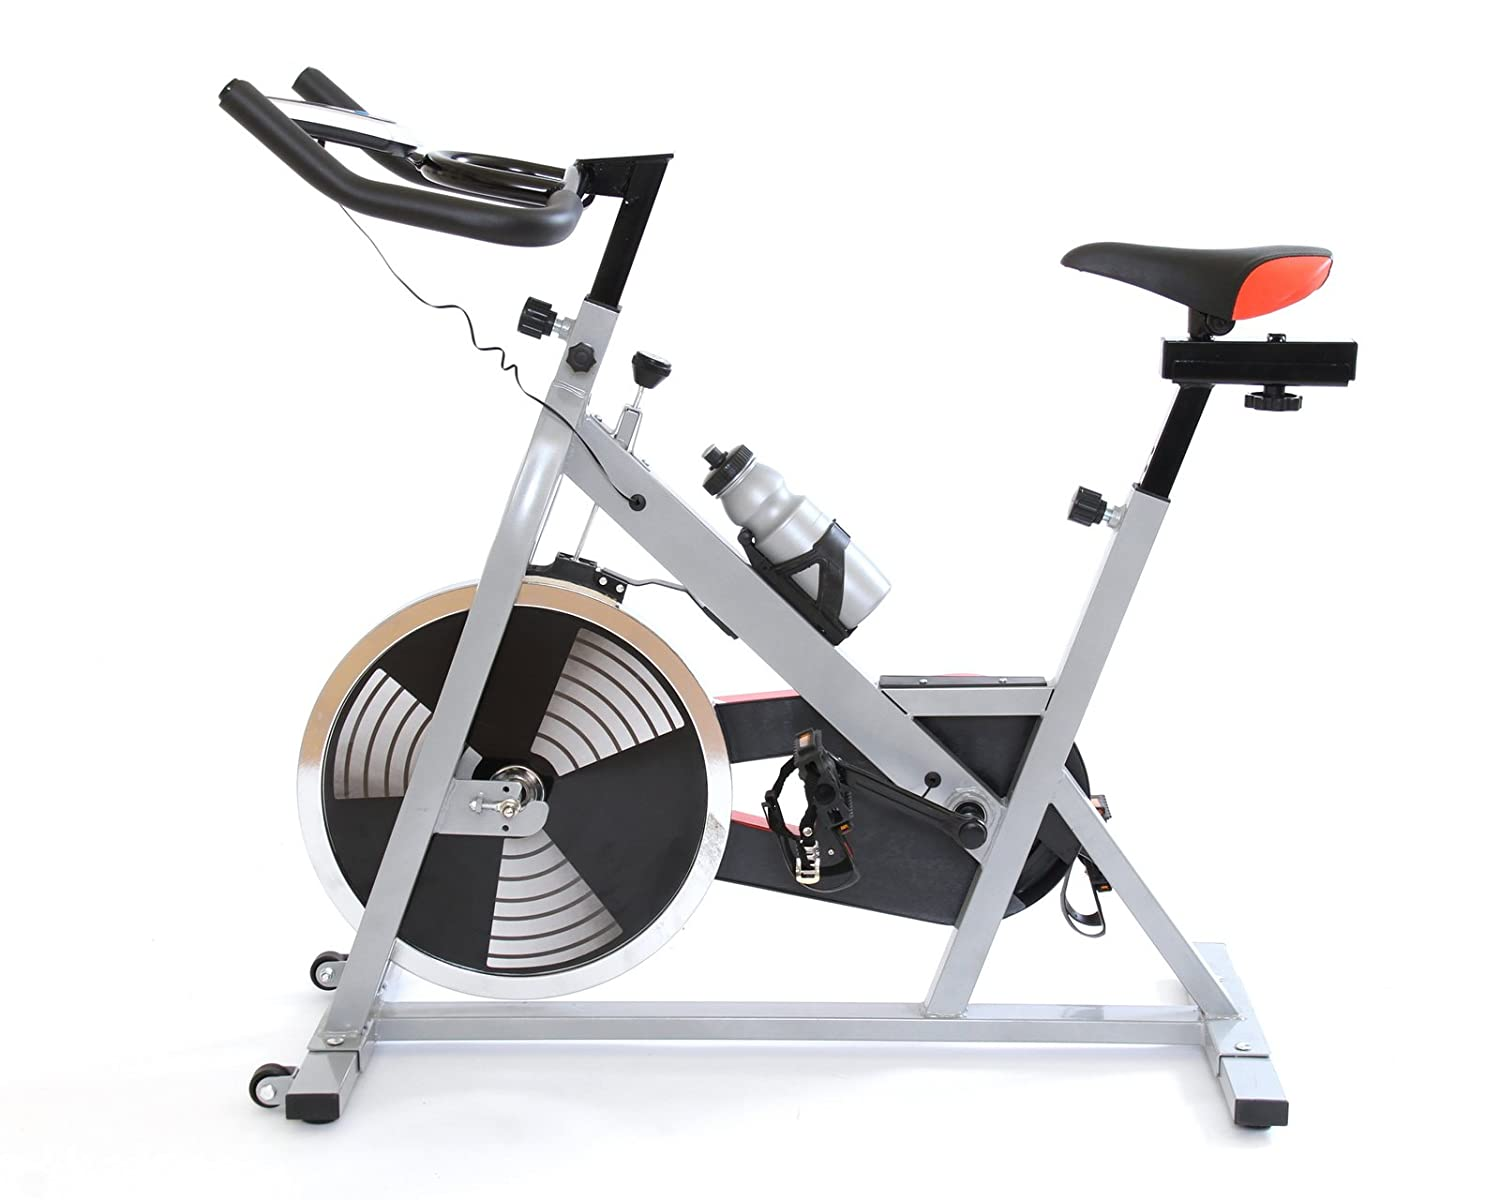 Gym Master Sb465 Exercise Bike Silver Red 123x51x135cm Amazon